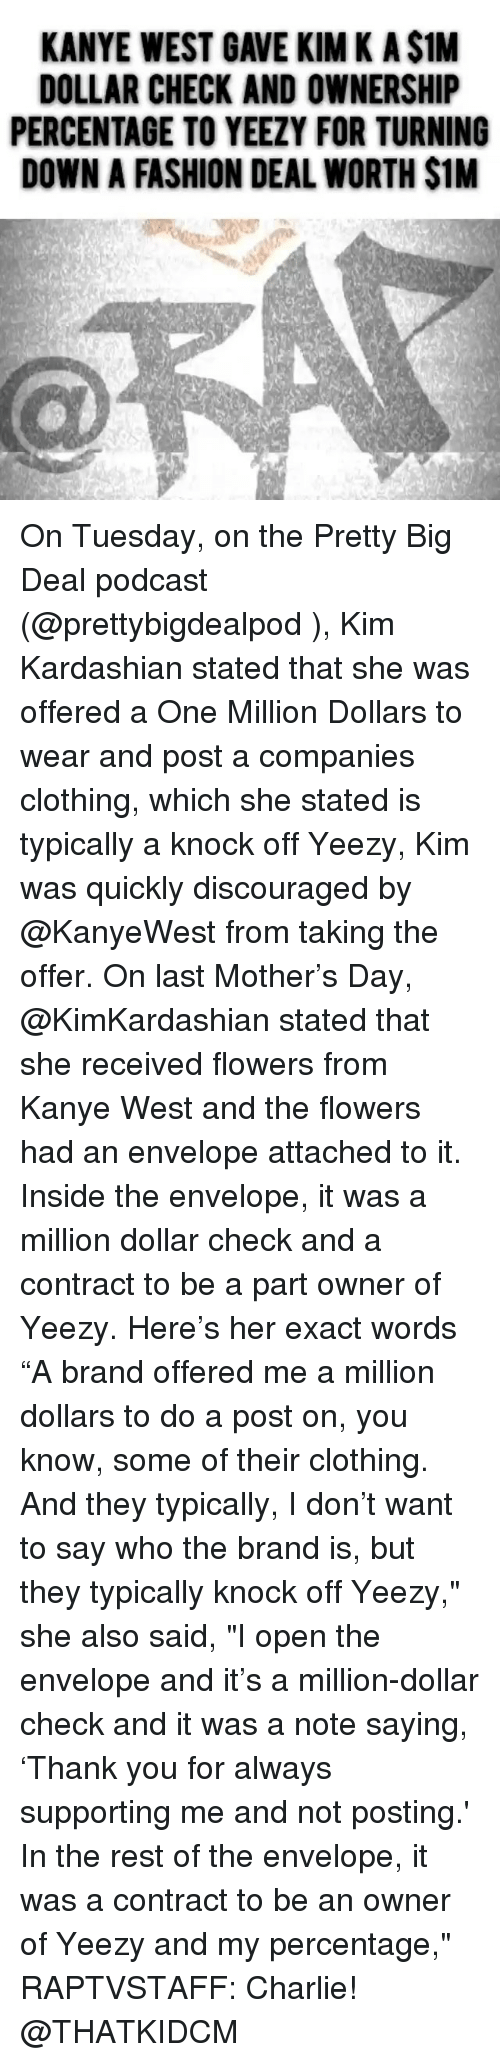 "kim k: KANYE WEST GAVE KIM K A $1M  DOLLAR CHECK AND OWNERSHIP  PERCENTAGE TO YEEZY FOR TURNING  DOWN A FASHION DEAL WORTH $1M On Tuesday, on the Pretty Big Deal podcast (@prettybigdealpod ), Kim Kardashian stated that she was offered a One Million Dollars to wear and post a companies clothing, which she stated is typically a knock off Yeezy, Kim was quickly discouraged by @KanyeWest from taking the offer. On last Mother's Day, @KimKardashian stated that she received flowers from Kanye West and the flowers had an envelope attached to it. Inside the envelope, it was a million dollar check and a contract to be a part owner of Yeezy. Here's her exact words ""A brand offered me a million dollars to do a post on, you know, some of their clothing. And they typically, I don't want to say who the brand is, but they typically knock off Yeezy,"" she also said, ""I open the envelope and it's a million-dollar check and it was a note saying, 'Thank you for always supporting me and not posting.' In the rest of the envelope, it was a contract to be an owner of Yeezy and my percentage,"" RAPTVSTAFF: Charlie! @THATKIDCM"